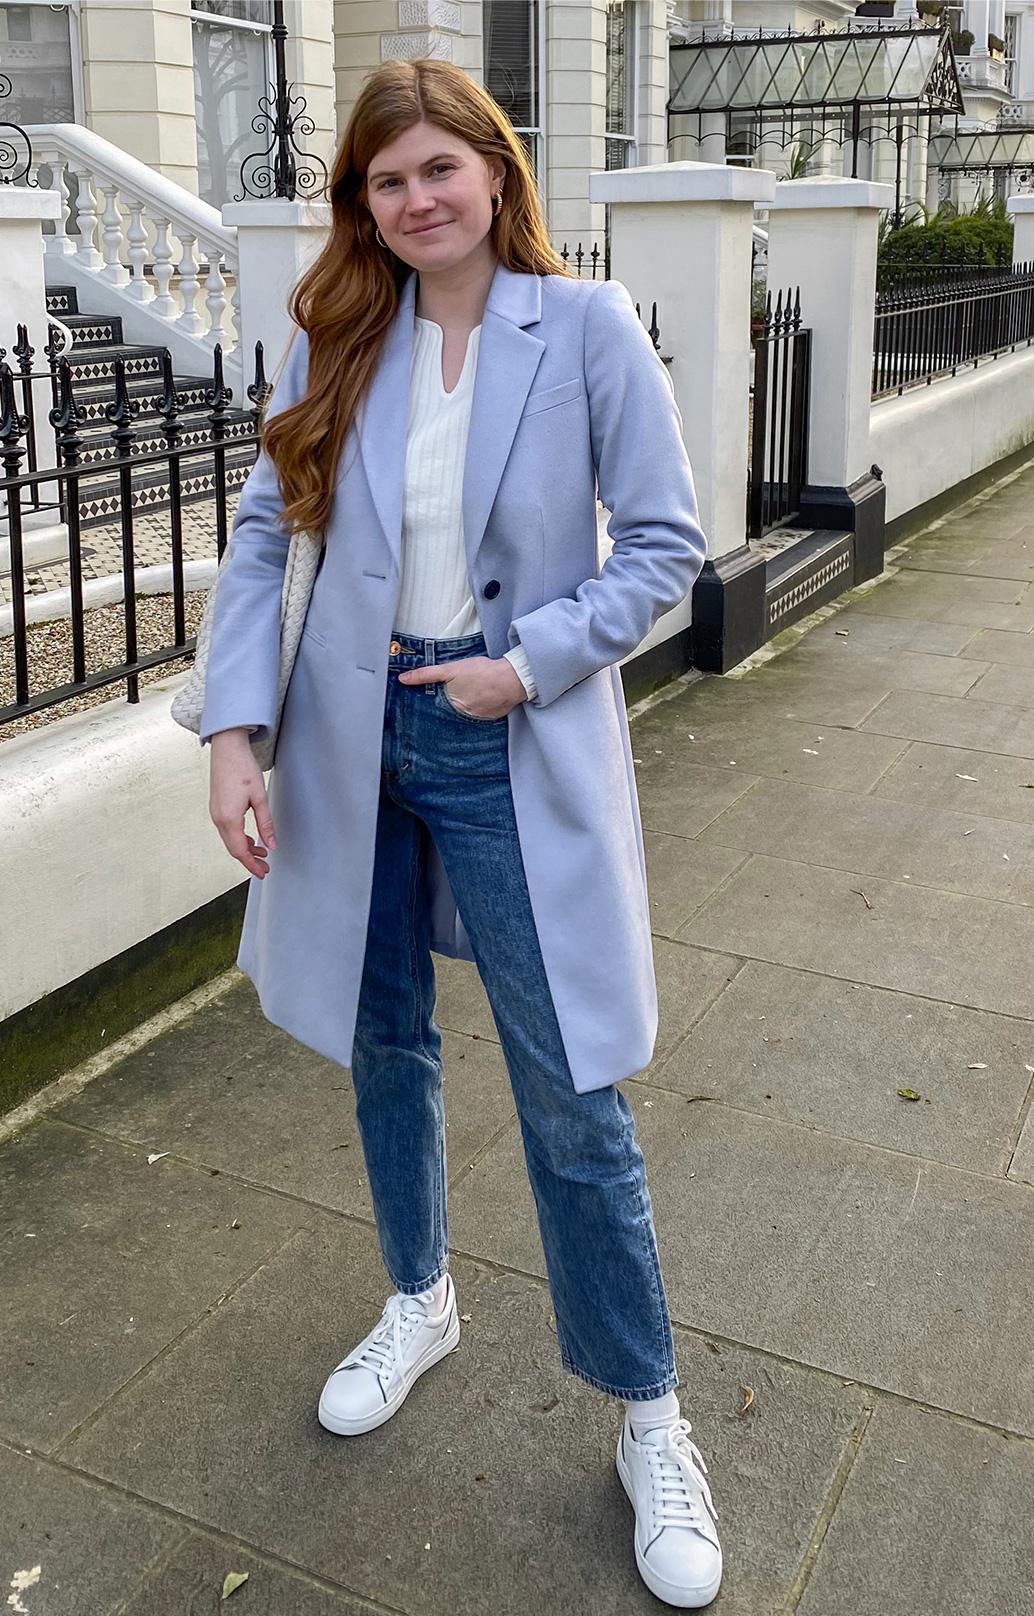 Fashion blogger @mollie_moore__ photographed on a walk wearing Hobbs Tilda blue coat, Vanessa jumper,Sukey jeans and Freda trainers.